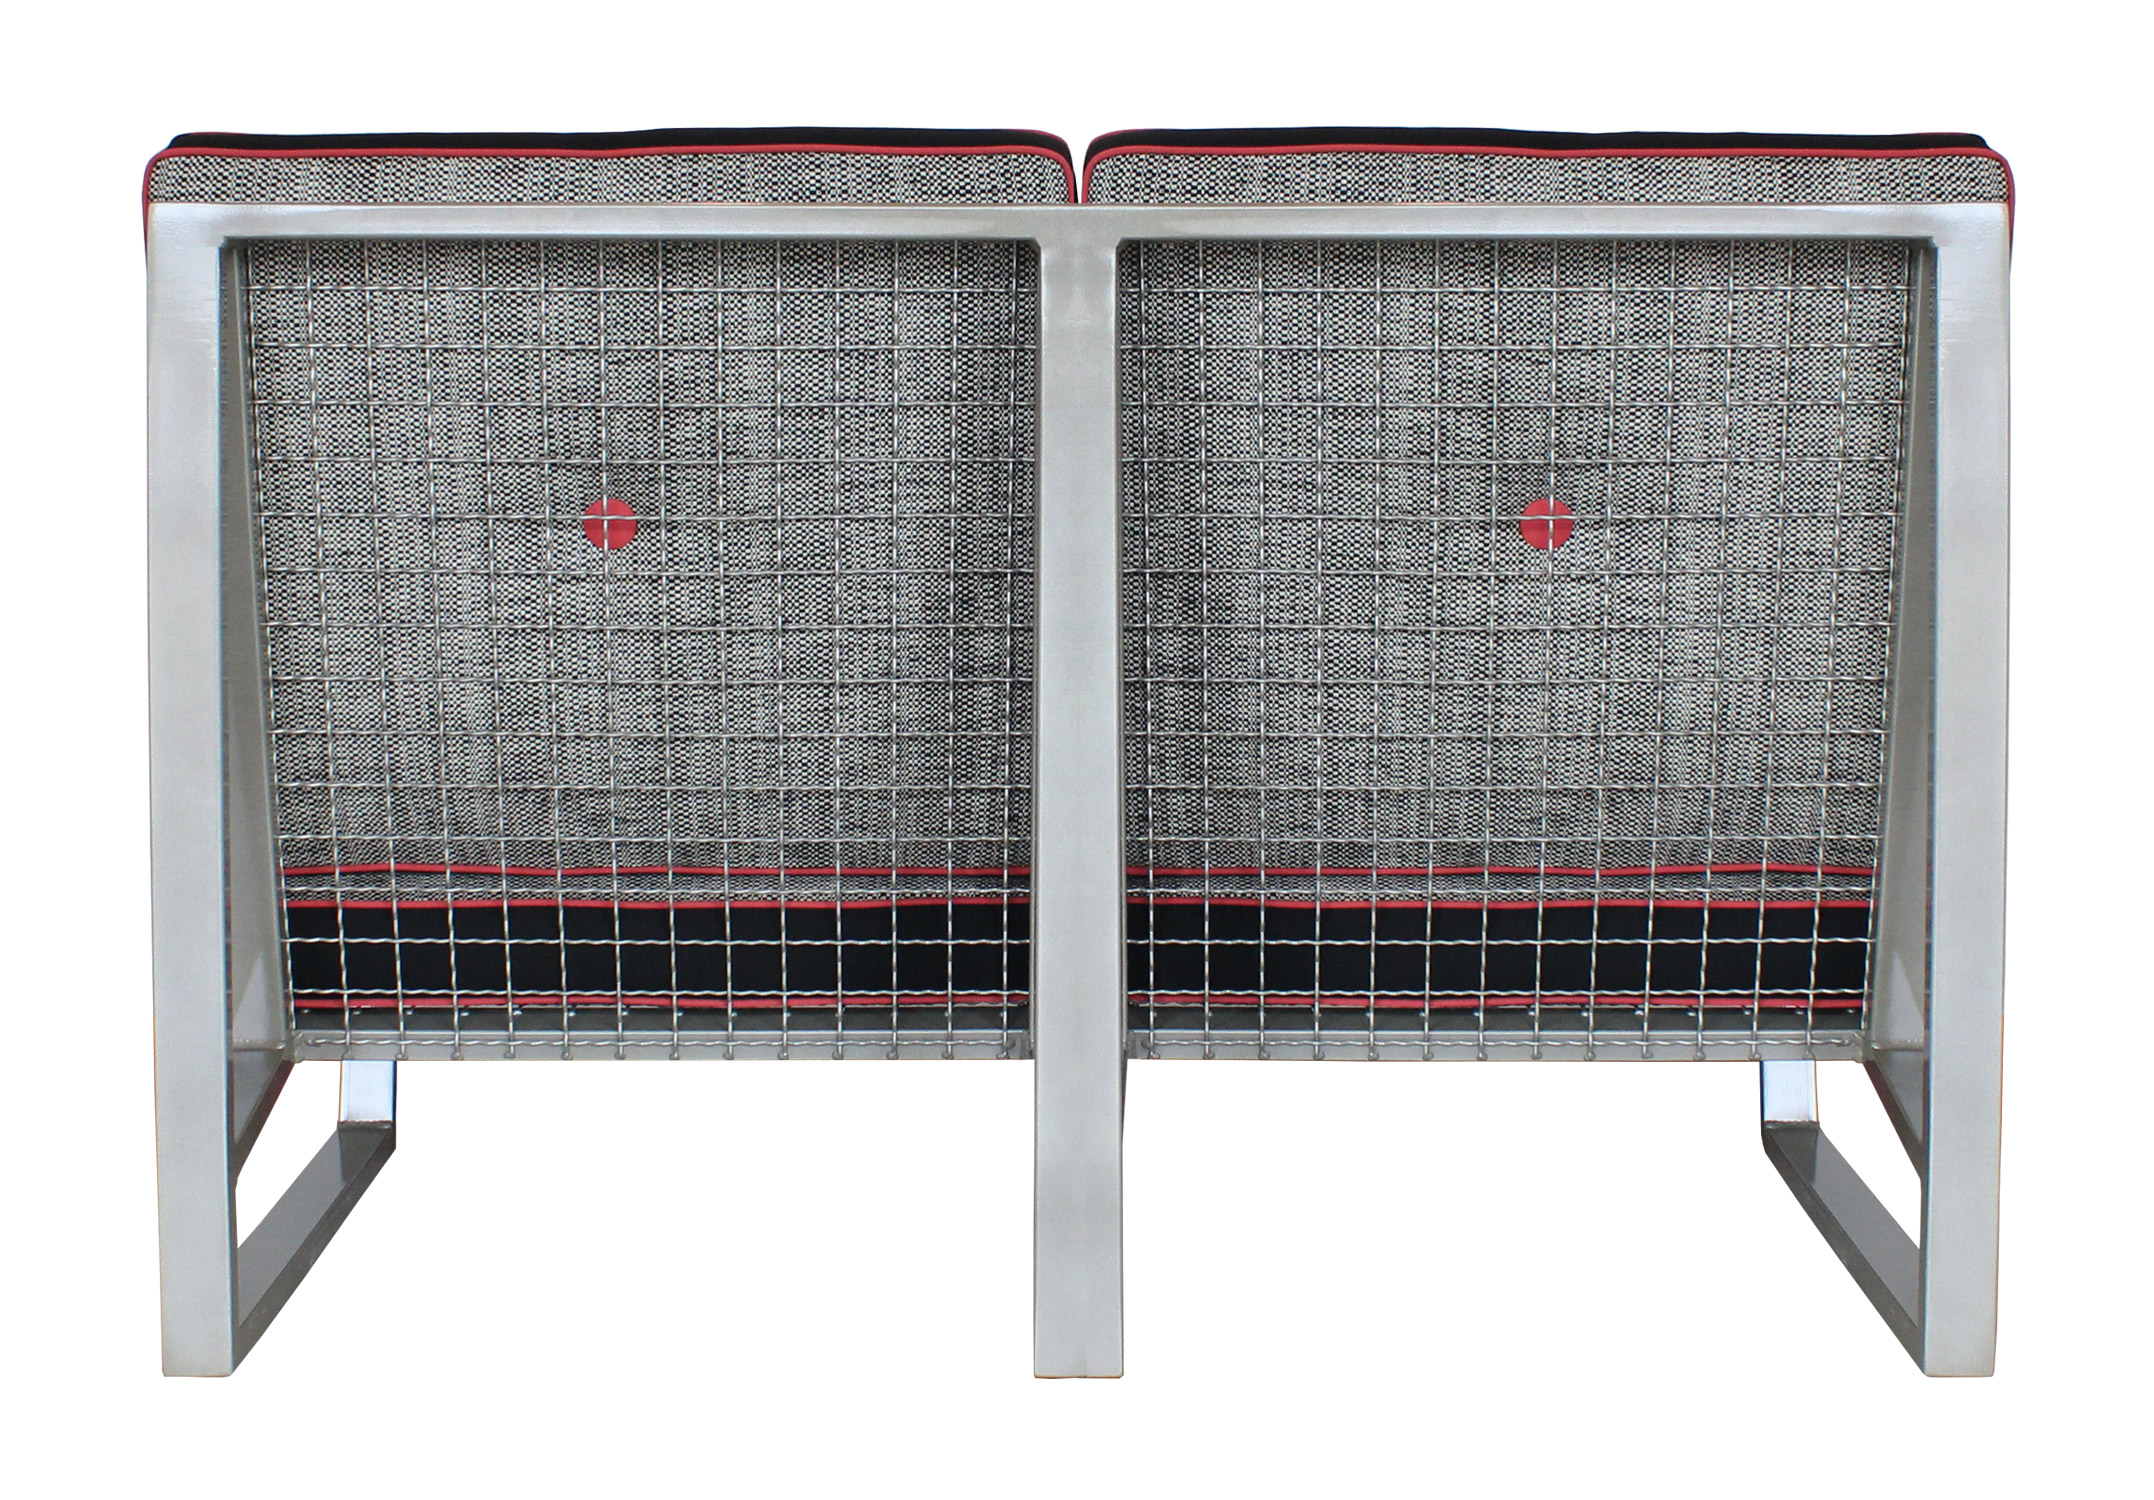 Del Calle loveseat from the back